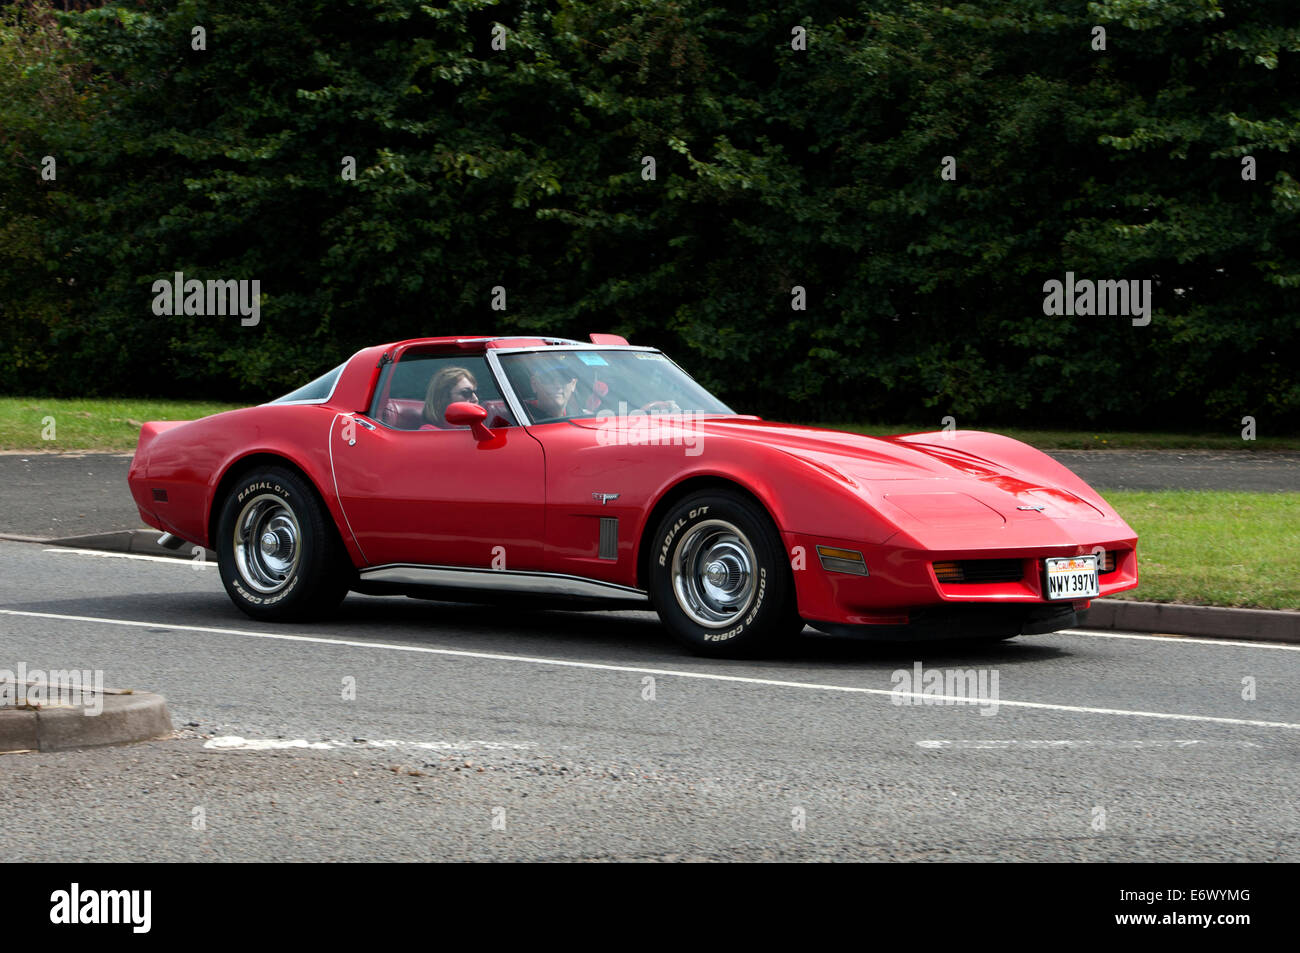 1979 chevrolet corvette stingray car on the fosse way road stock